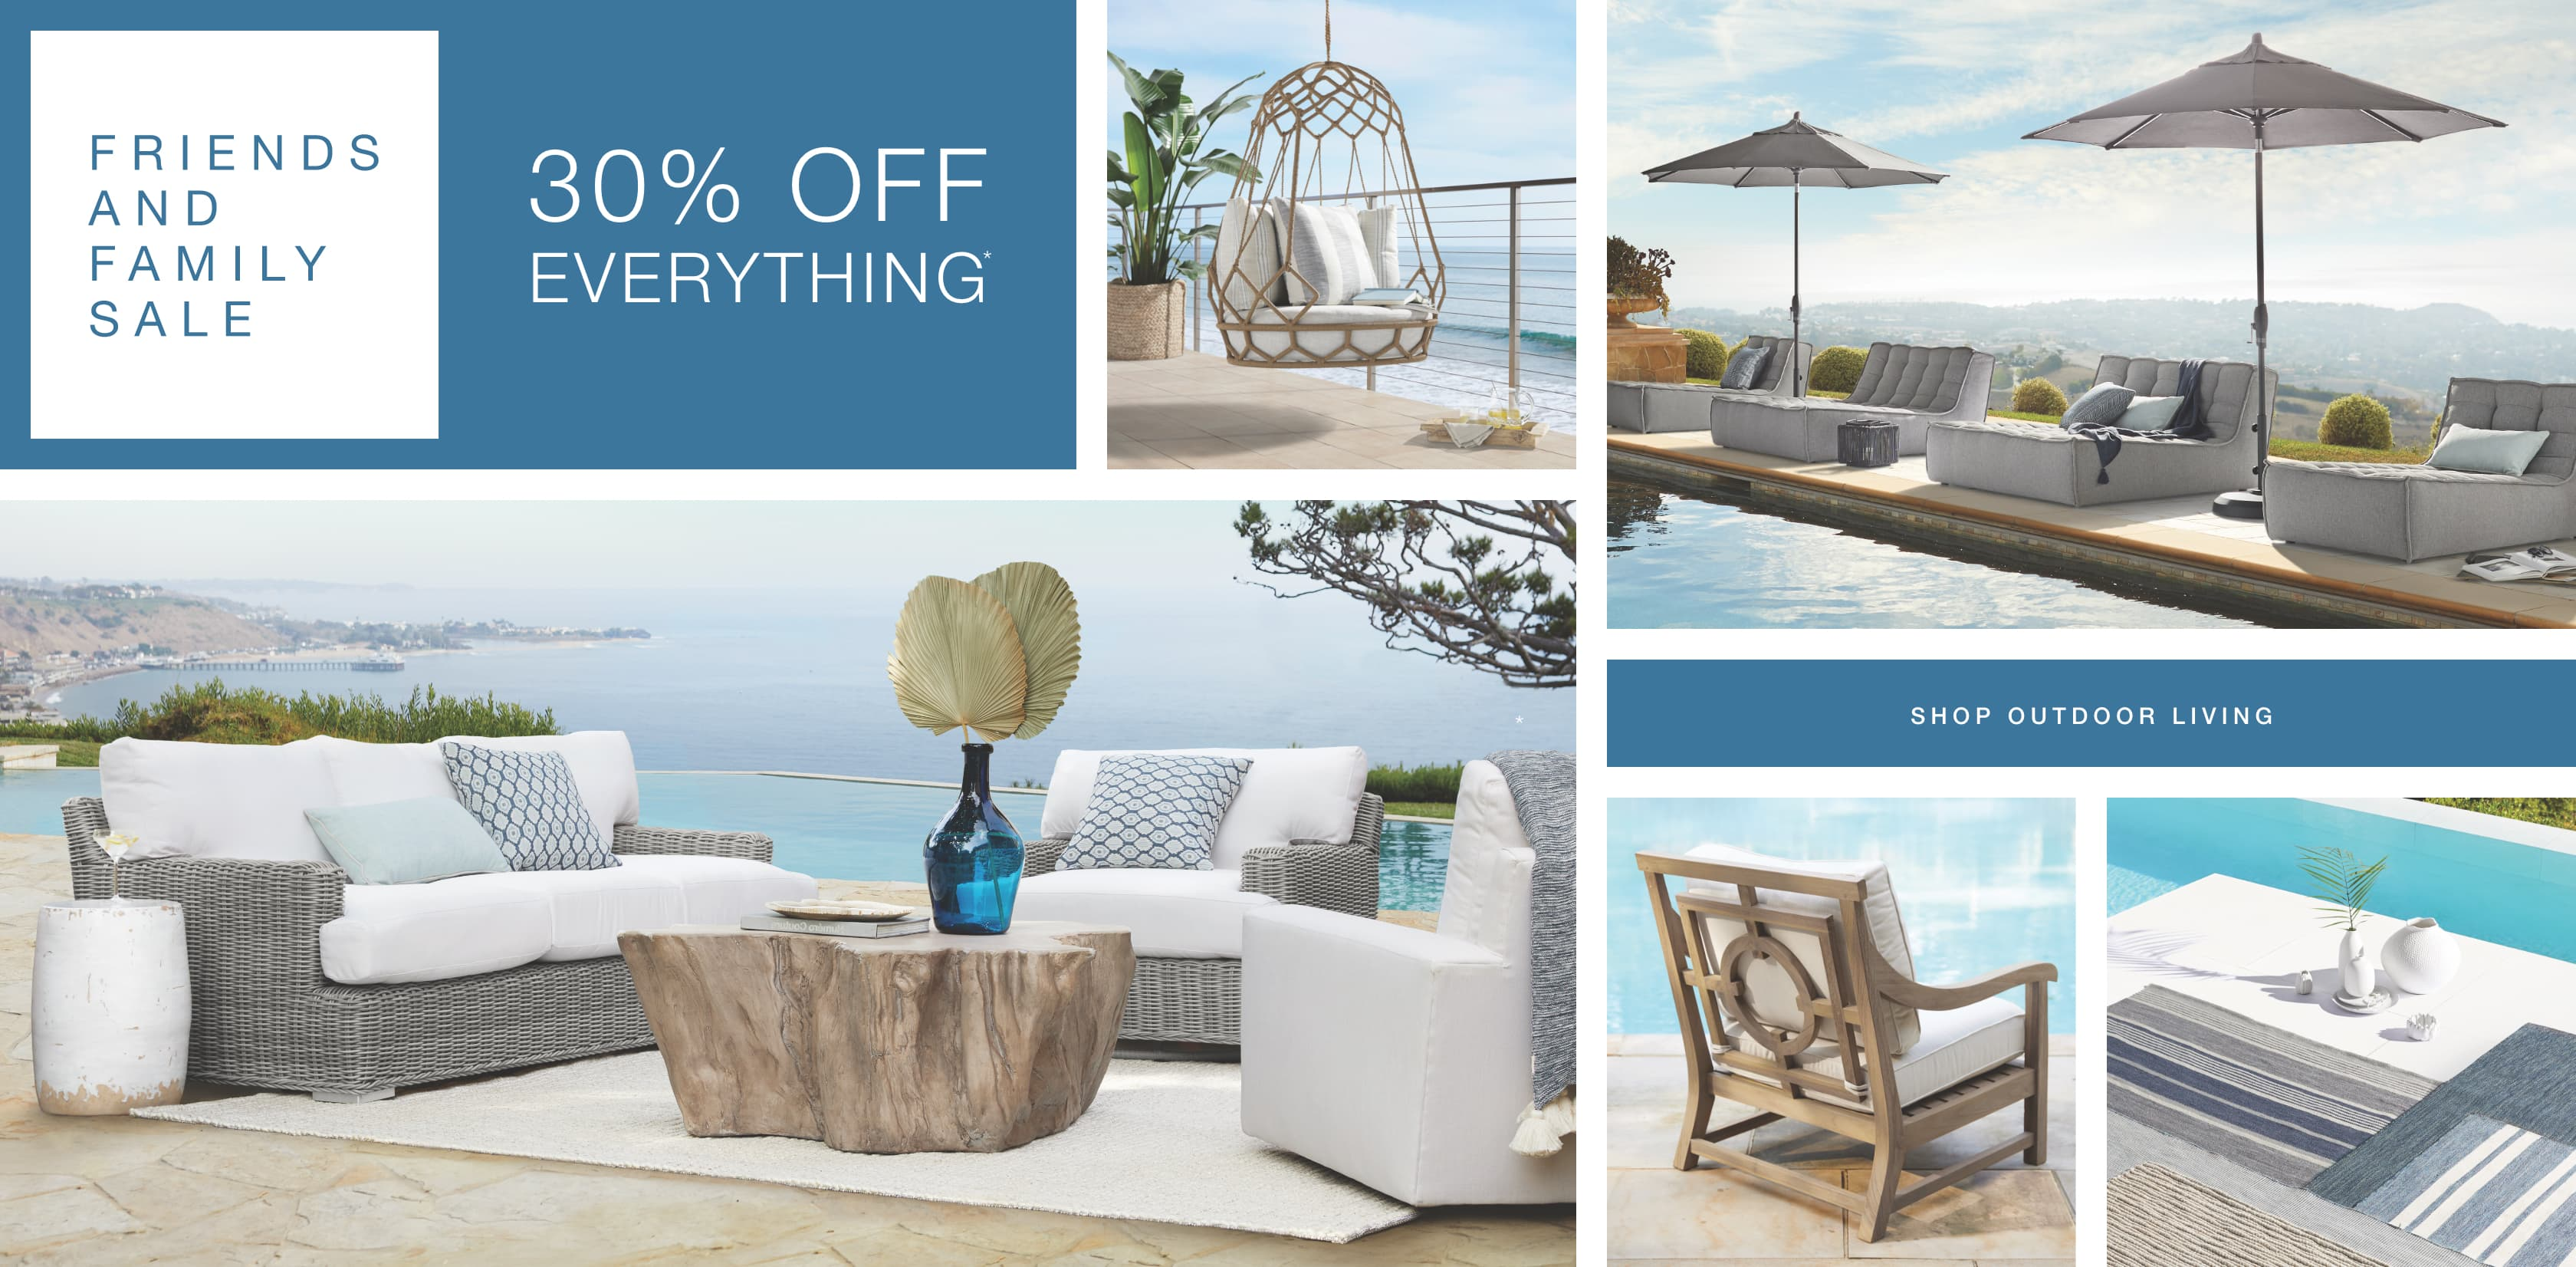 Shop Arhaus Outdoor Collections During the Friends and Family Sale